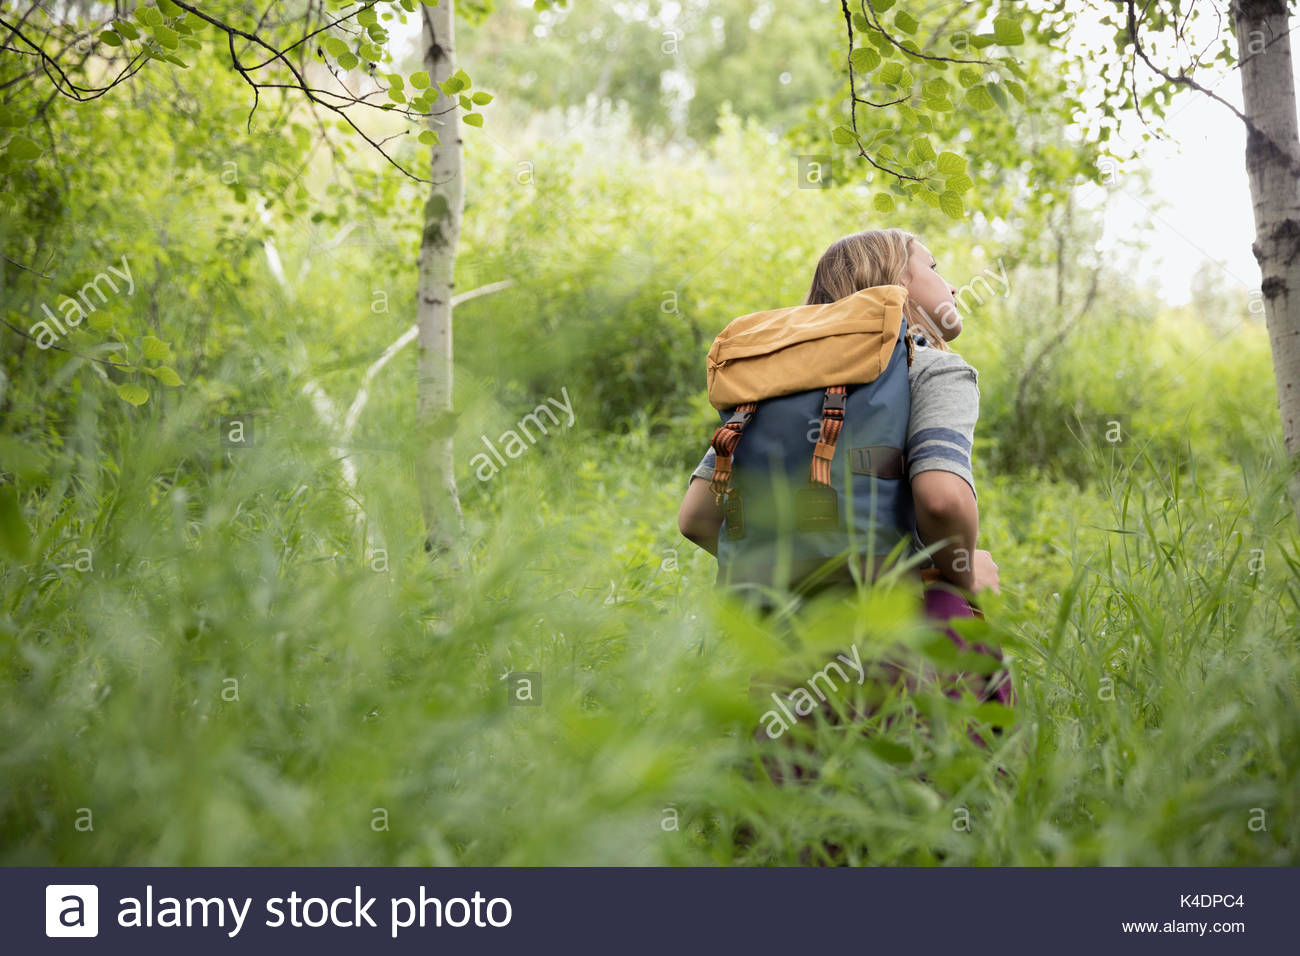 Curieux teenage girl with backpack hiking in tall grass in woods Photo Stock